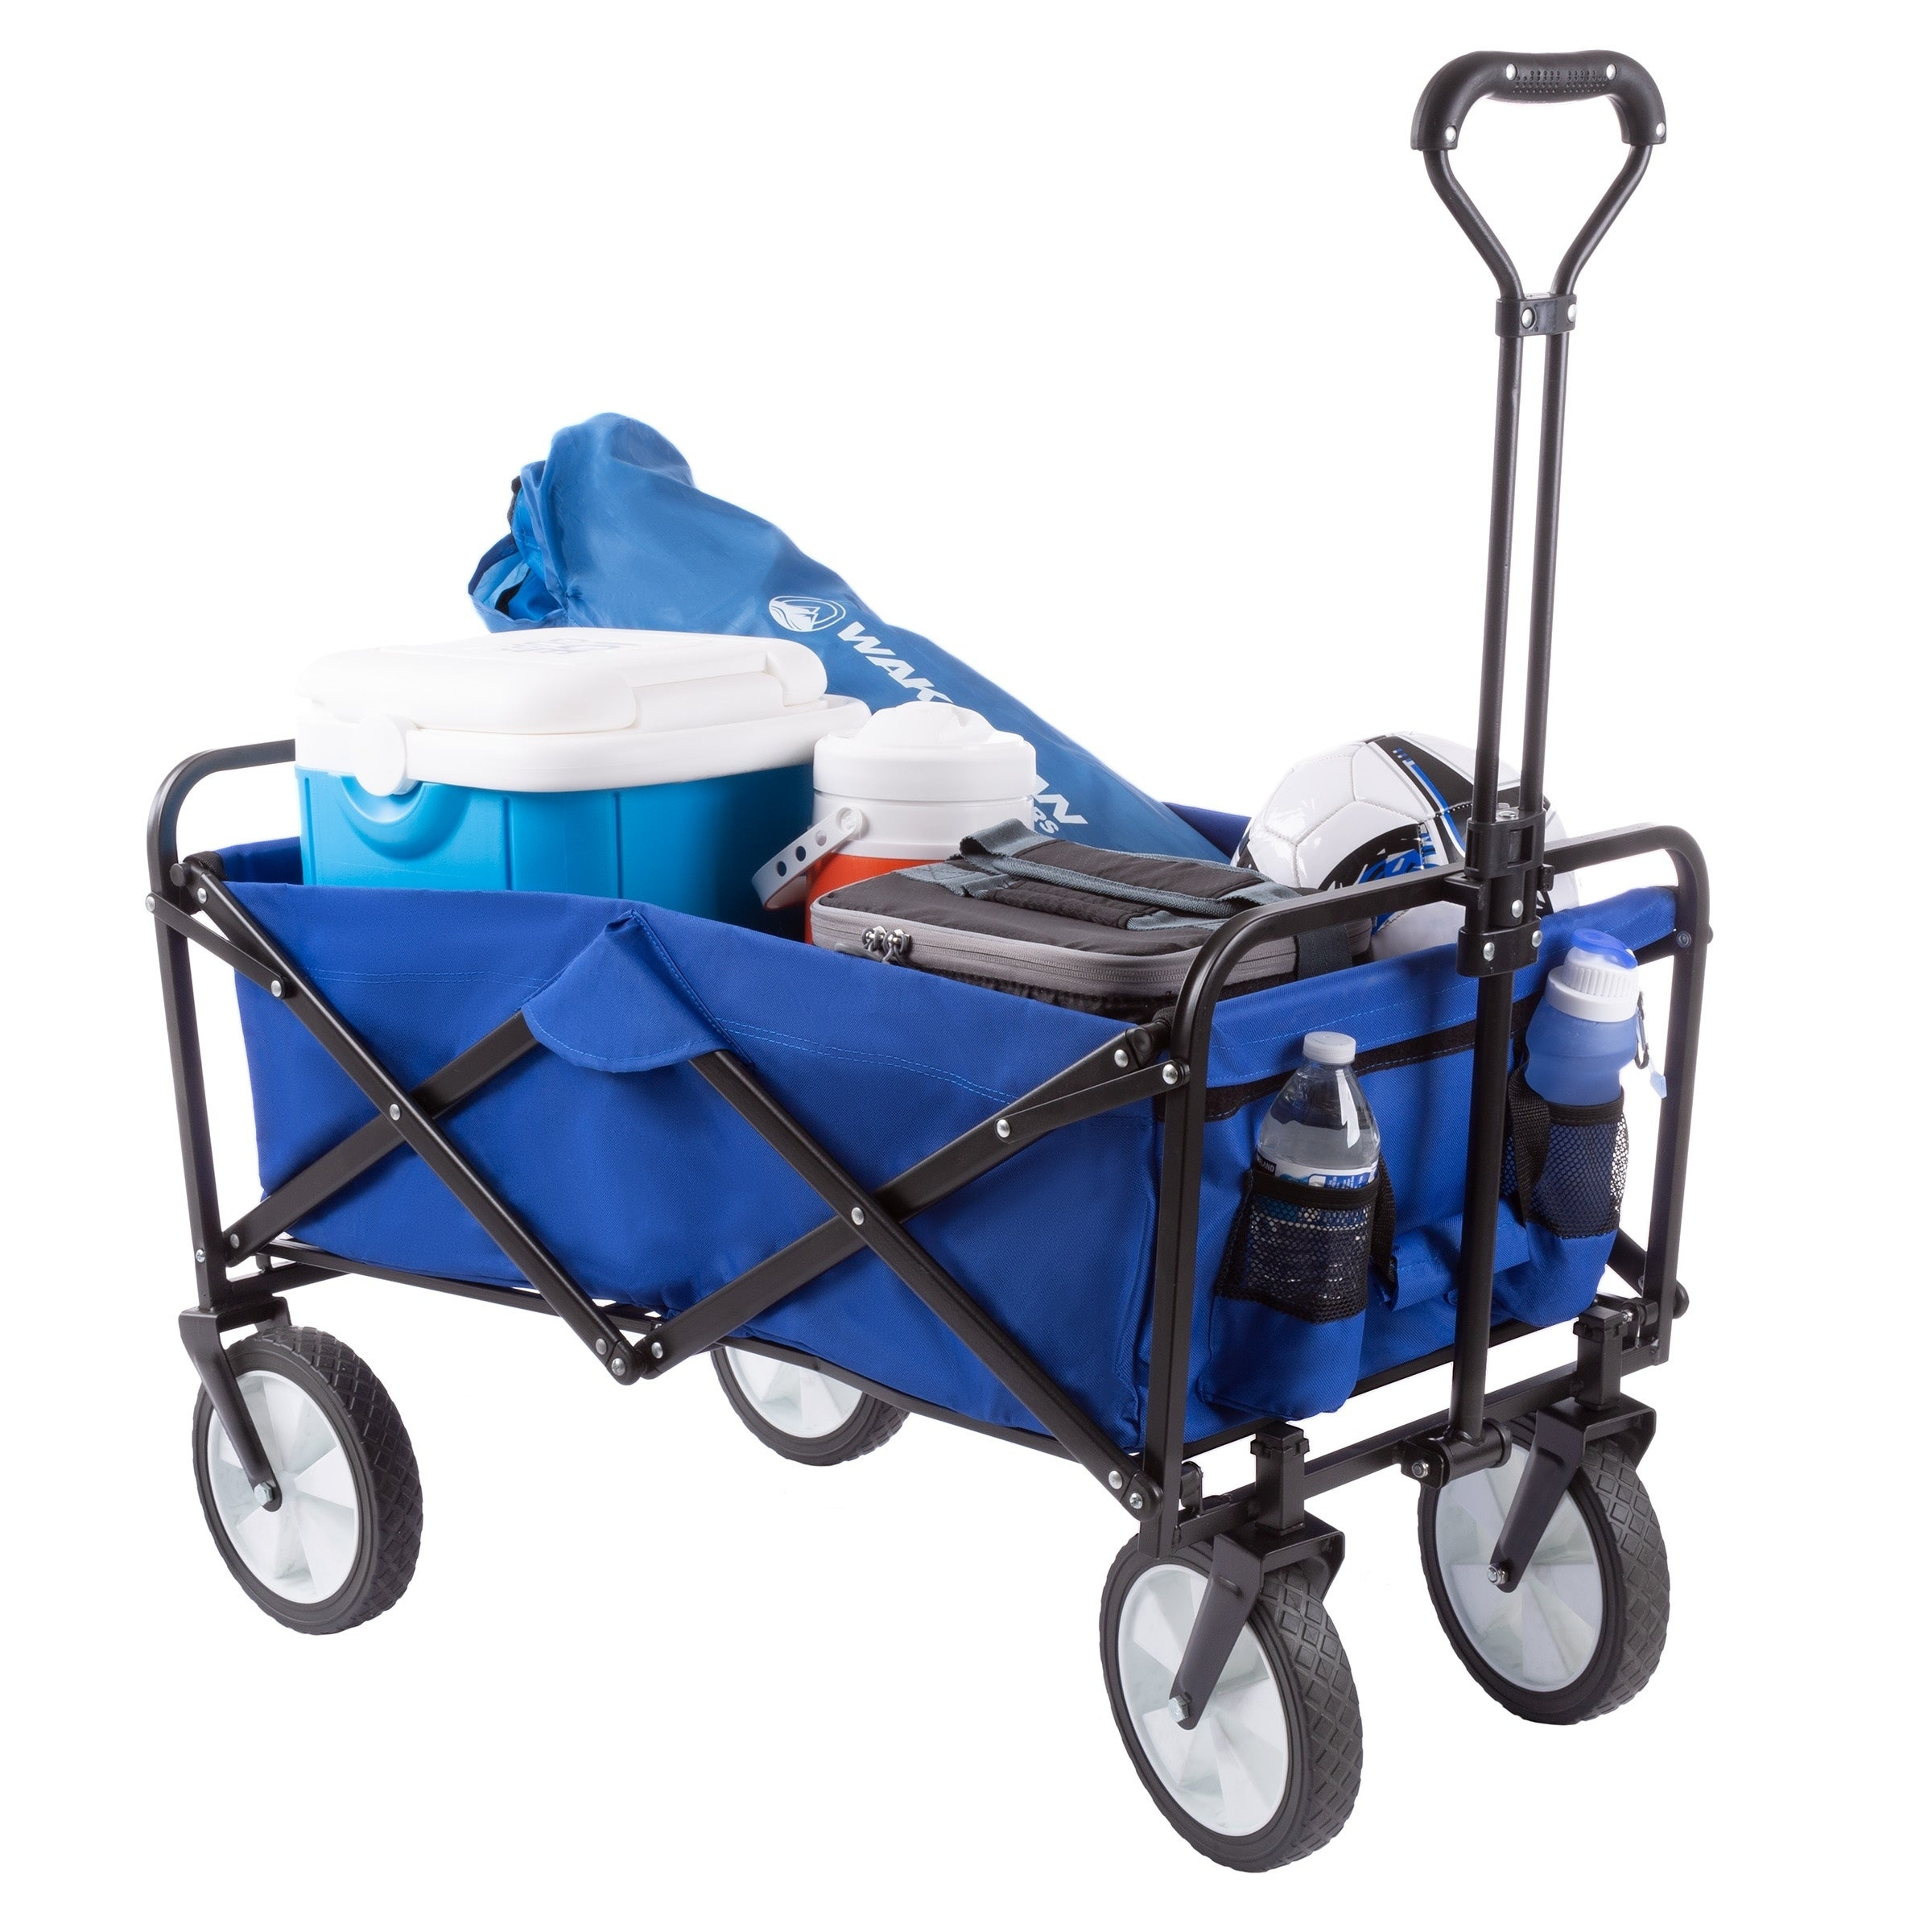 Collapsible Utility Wagon with Telescoping Handle \u2013 Heavy Duty Wheeled Cart  for Camping, Gardening, Landscaping by Pure Garden